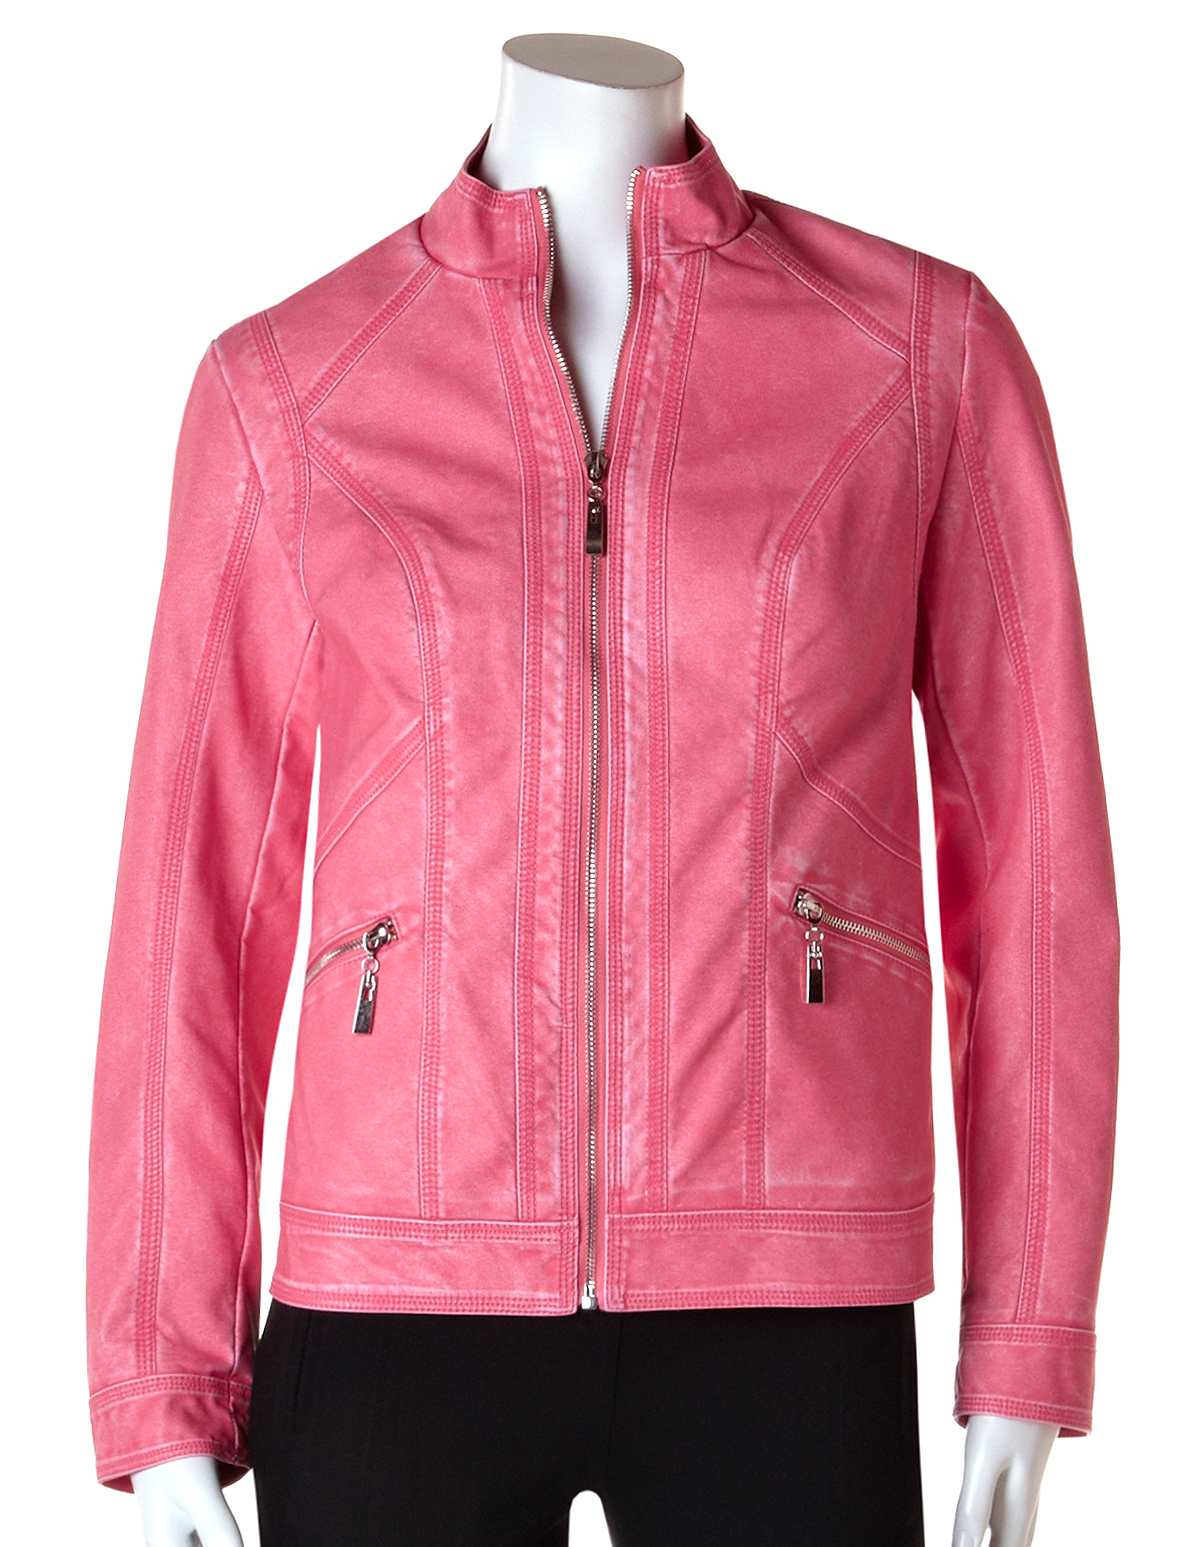 Womens pleather jacket